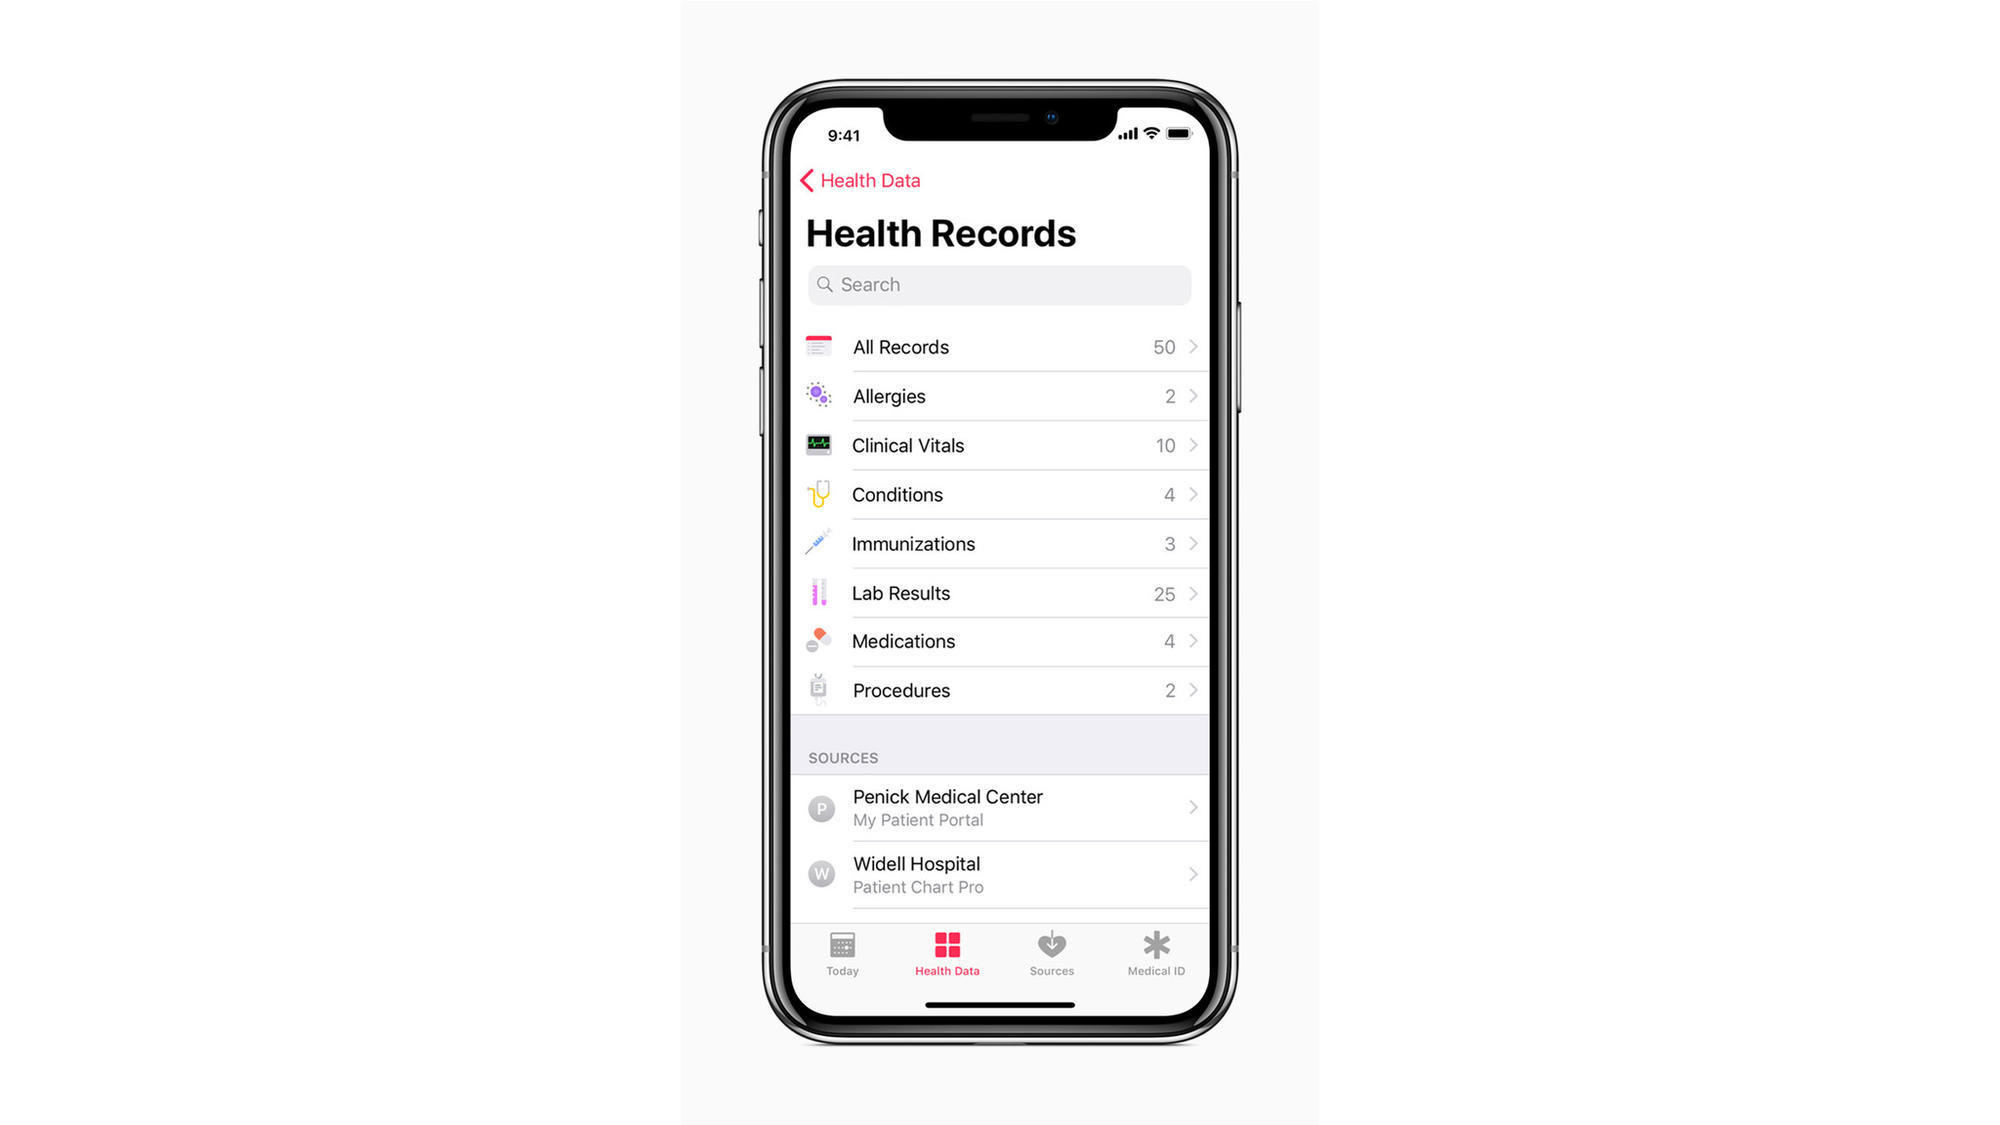 Hopkins and MedStar patients can now see medical records on iPhone app